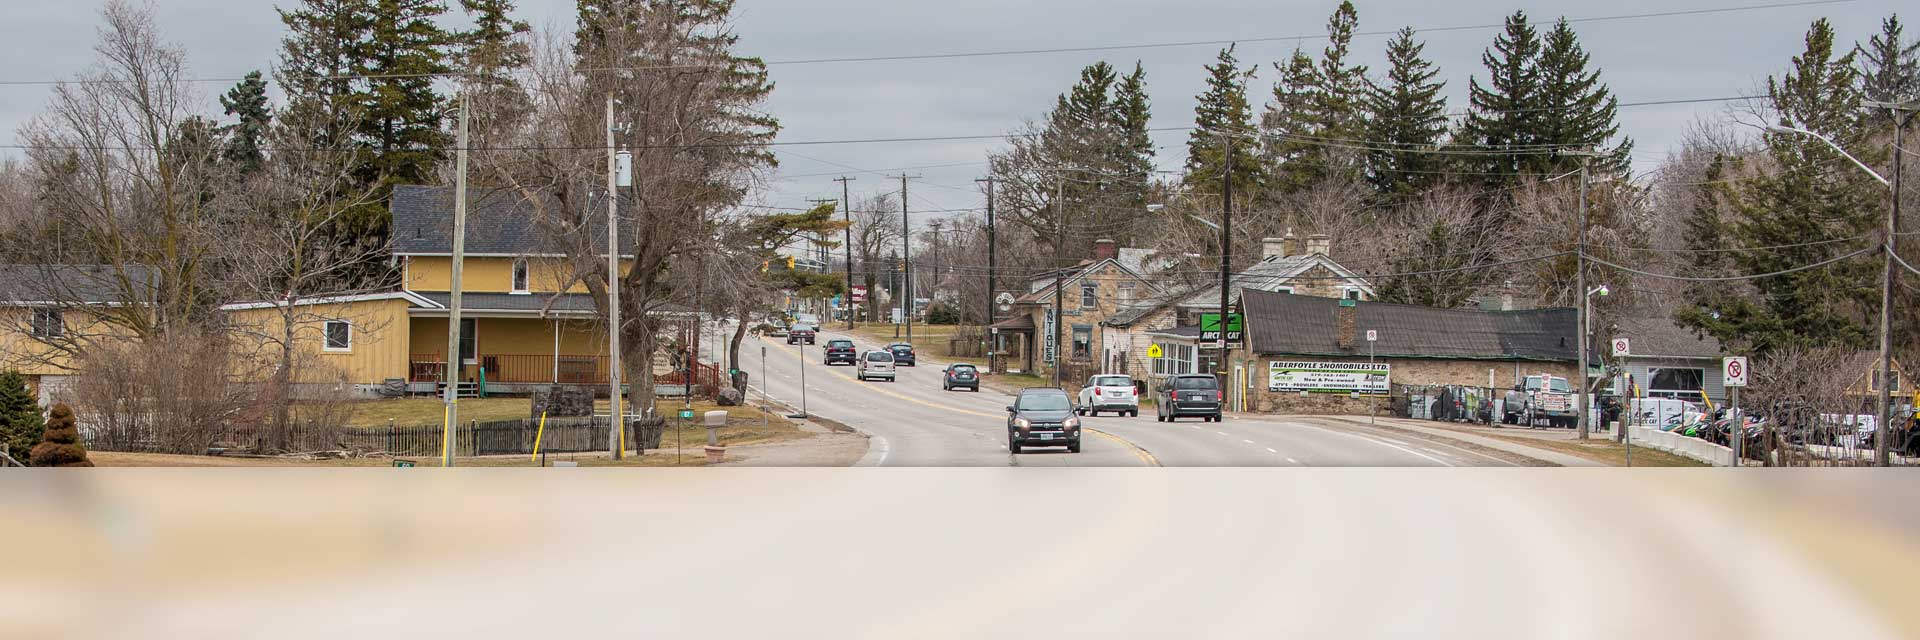 South Guelph is booming. Find out firsthand why Aberfoyle can't grow fast enough.